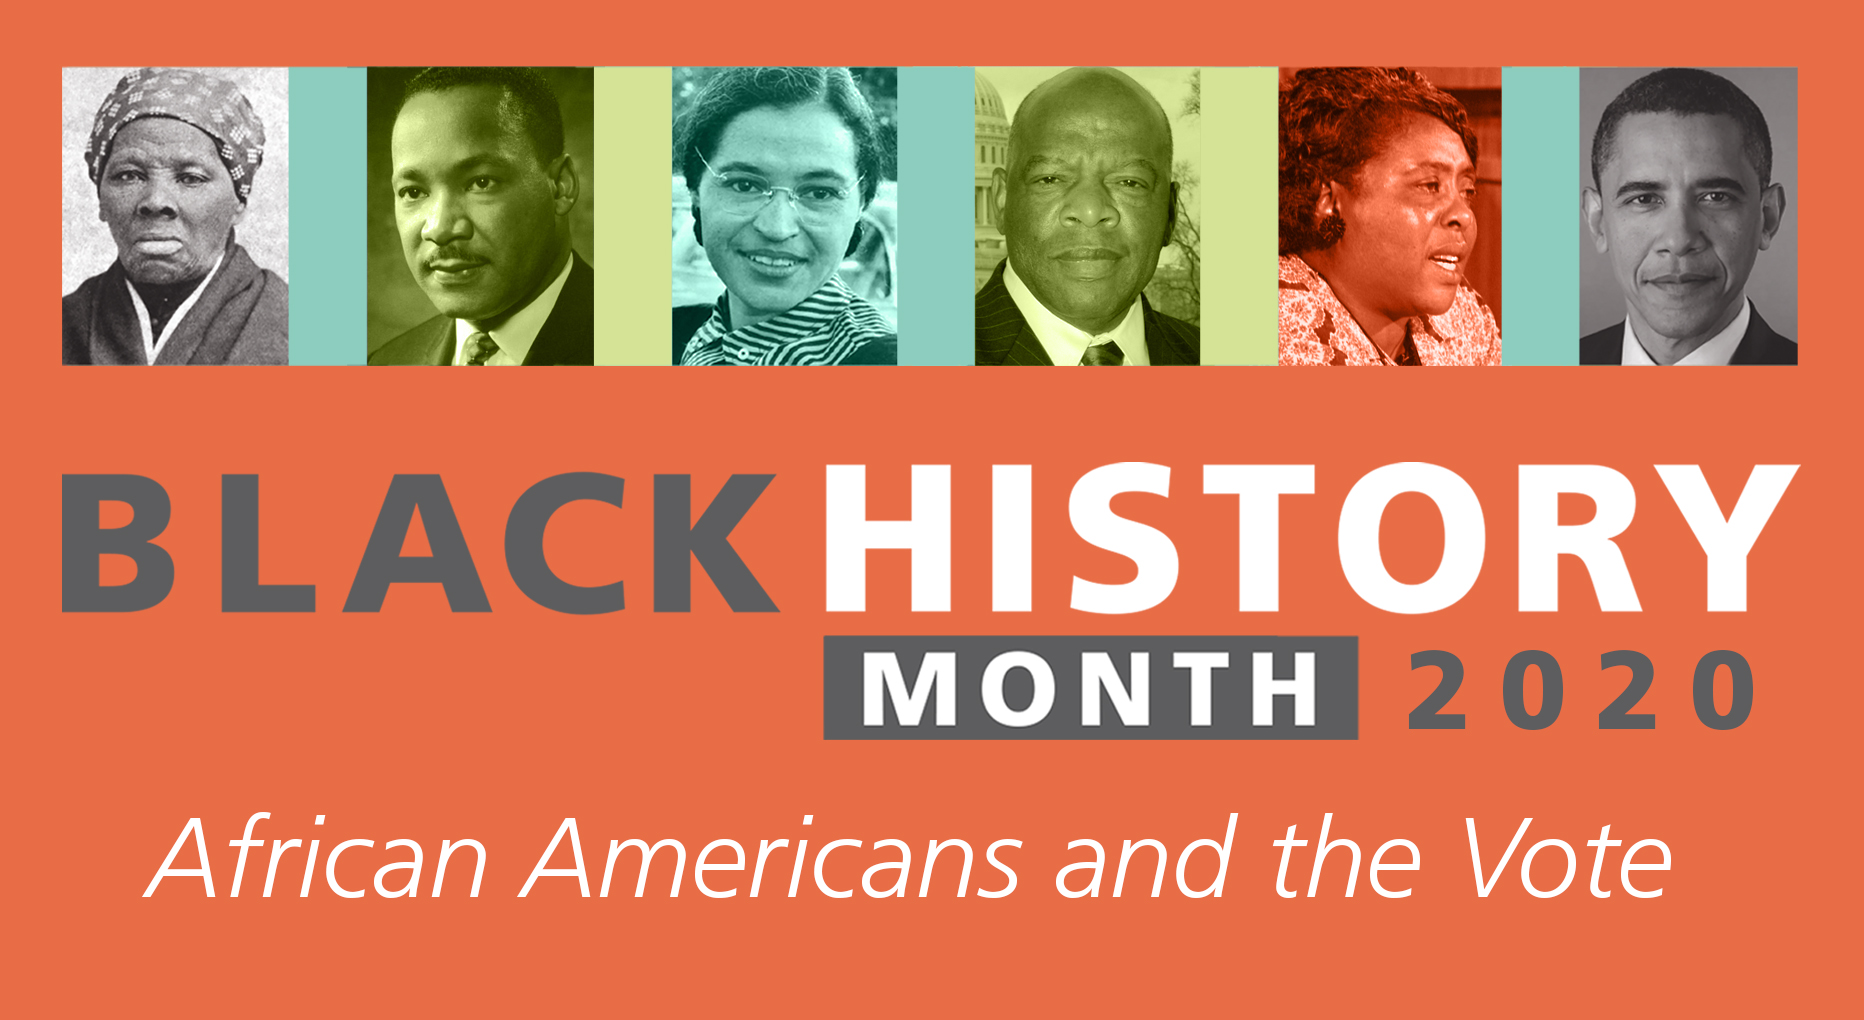 Special Events Scheduled To Celebrate Black History Month